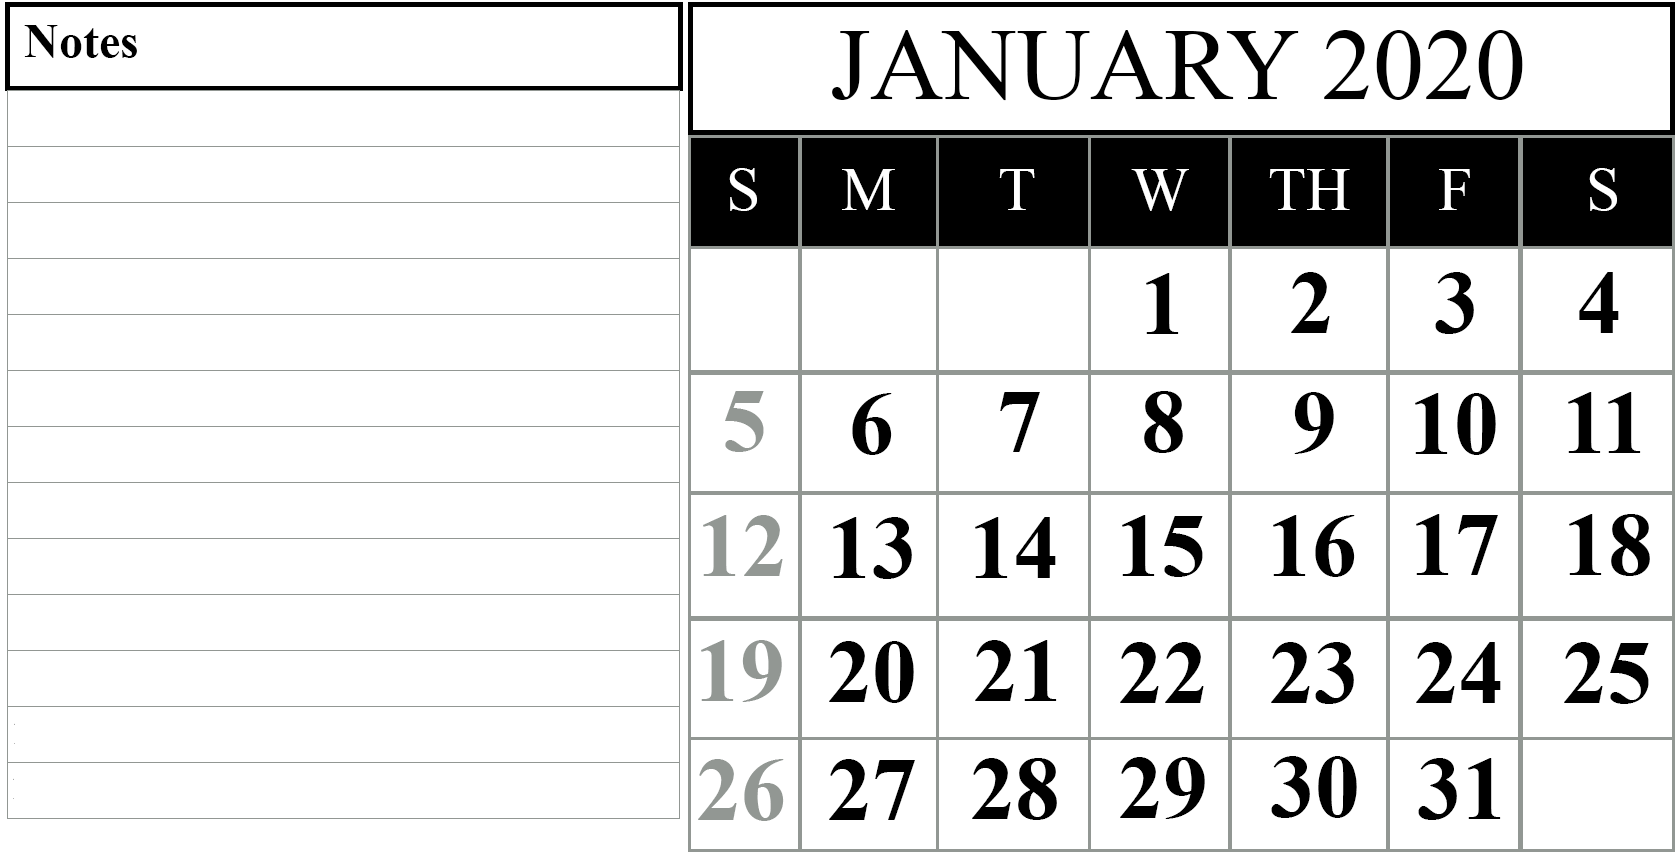 January 2020 Calendar Excel Notes